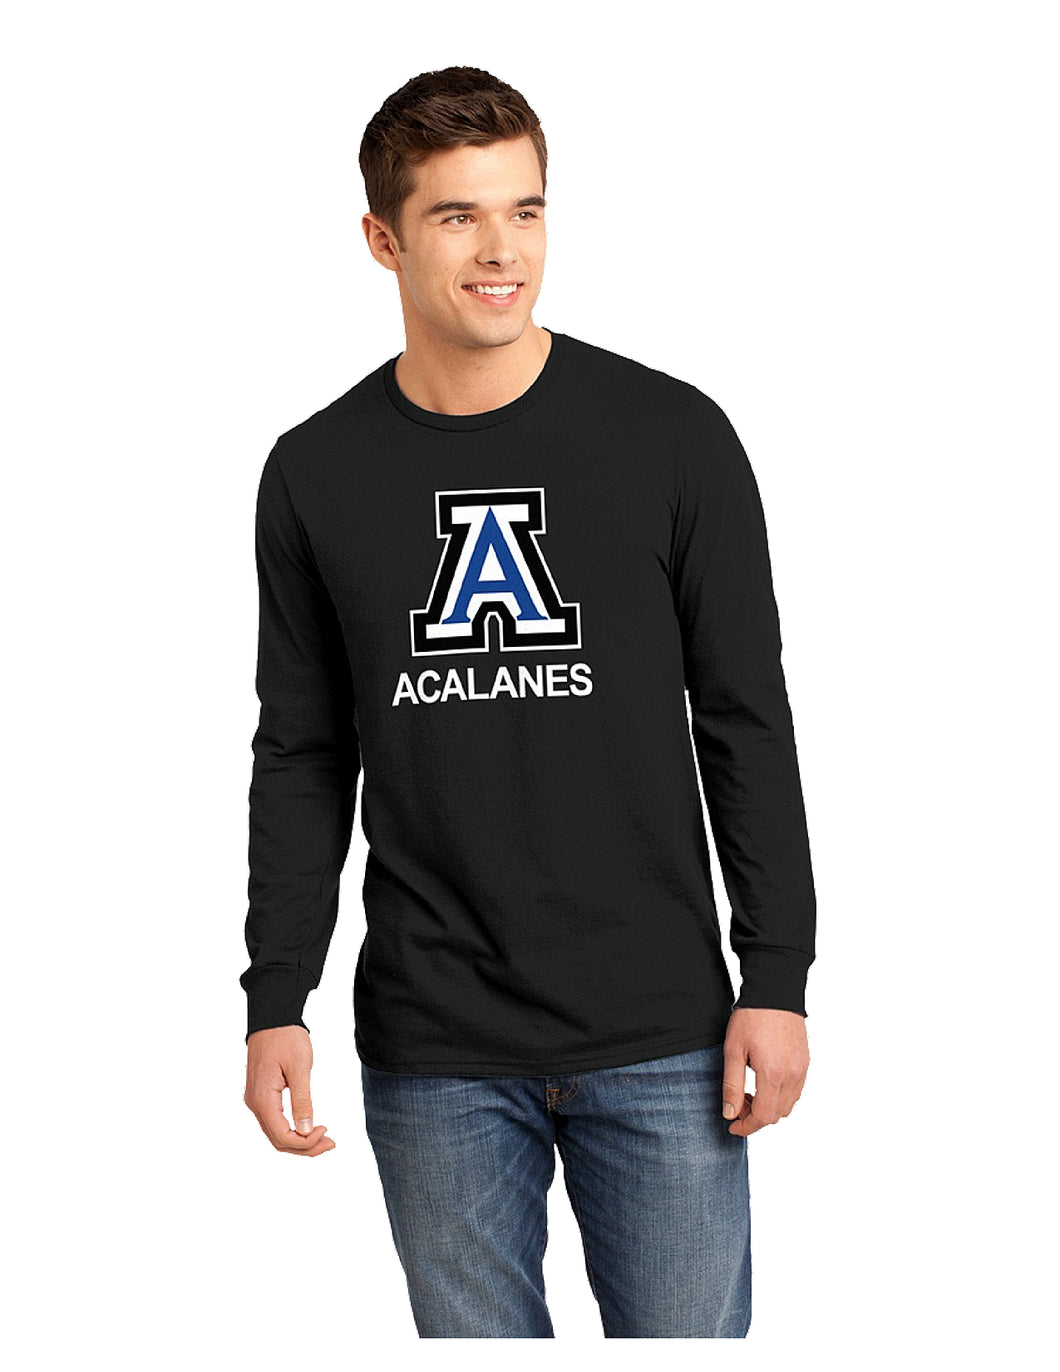 District® - Young Mens The Concert Tee® Long Sleeve Black with Screen Printed Big Acalanes